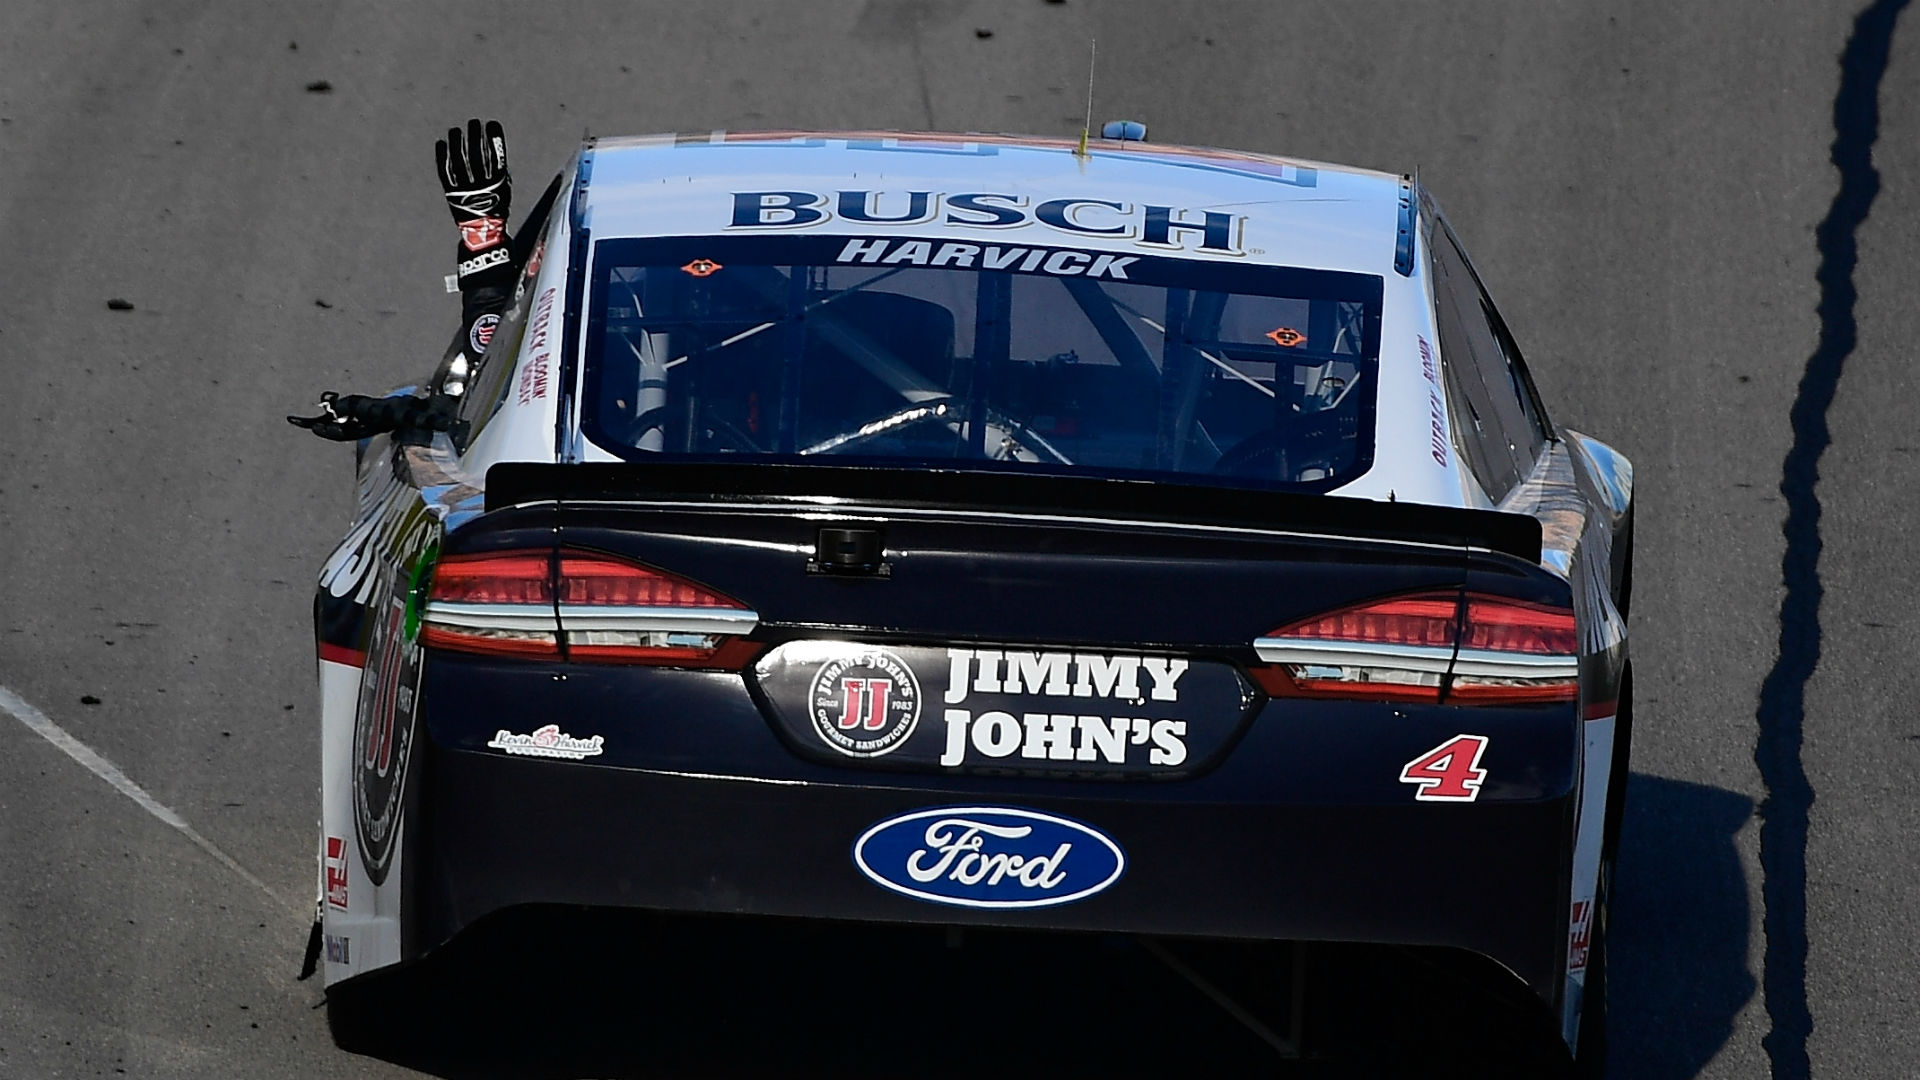 NASCAR penalizes Kevin Harvick's team for rear window issue